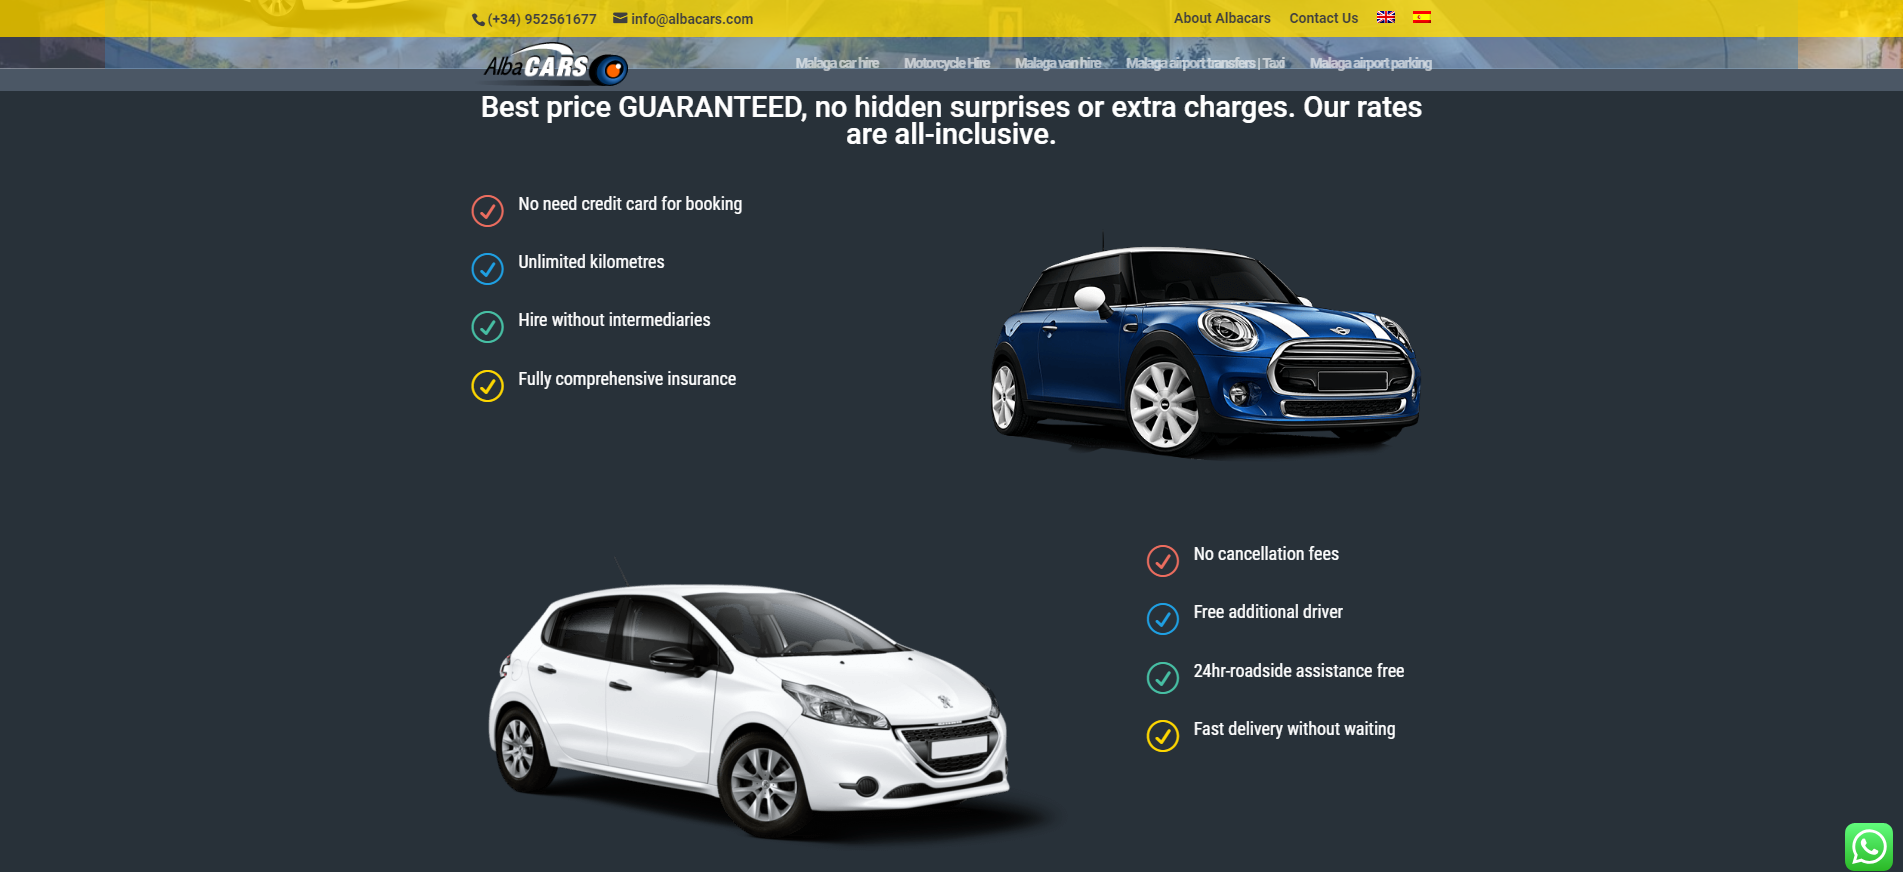 Rent your car in malaga airport with our company albacars